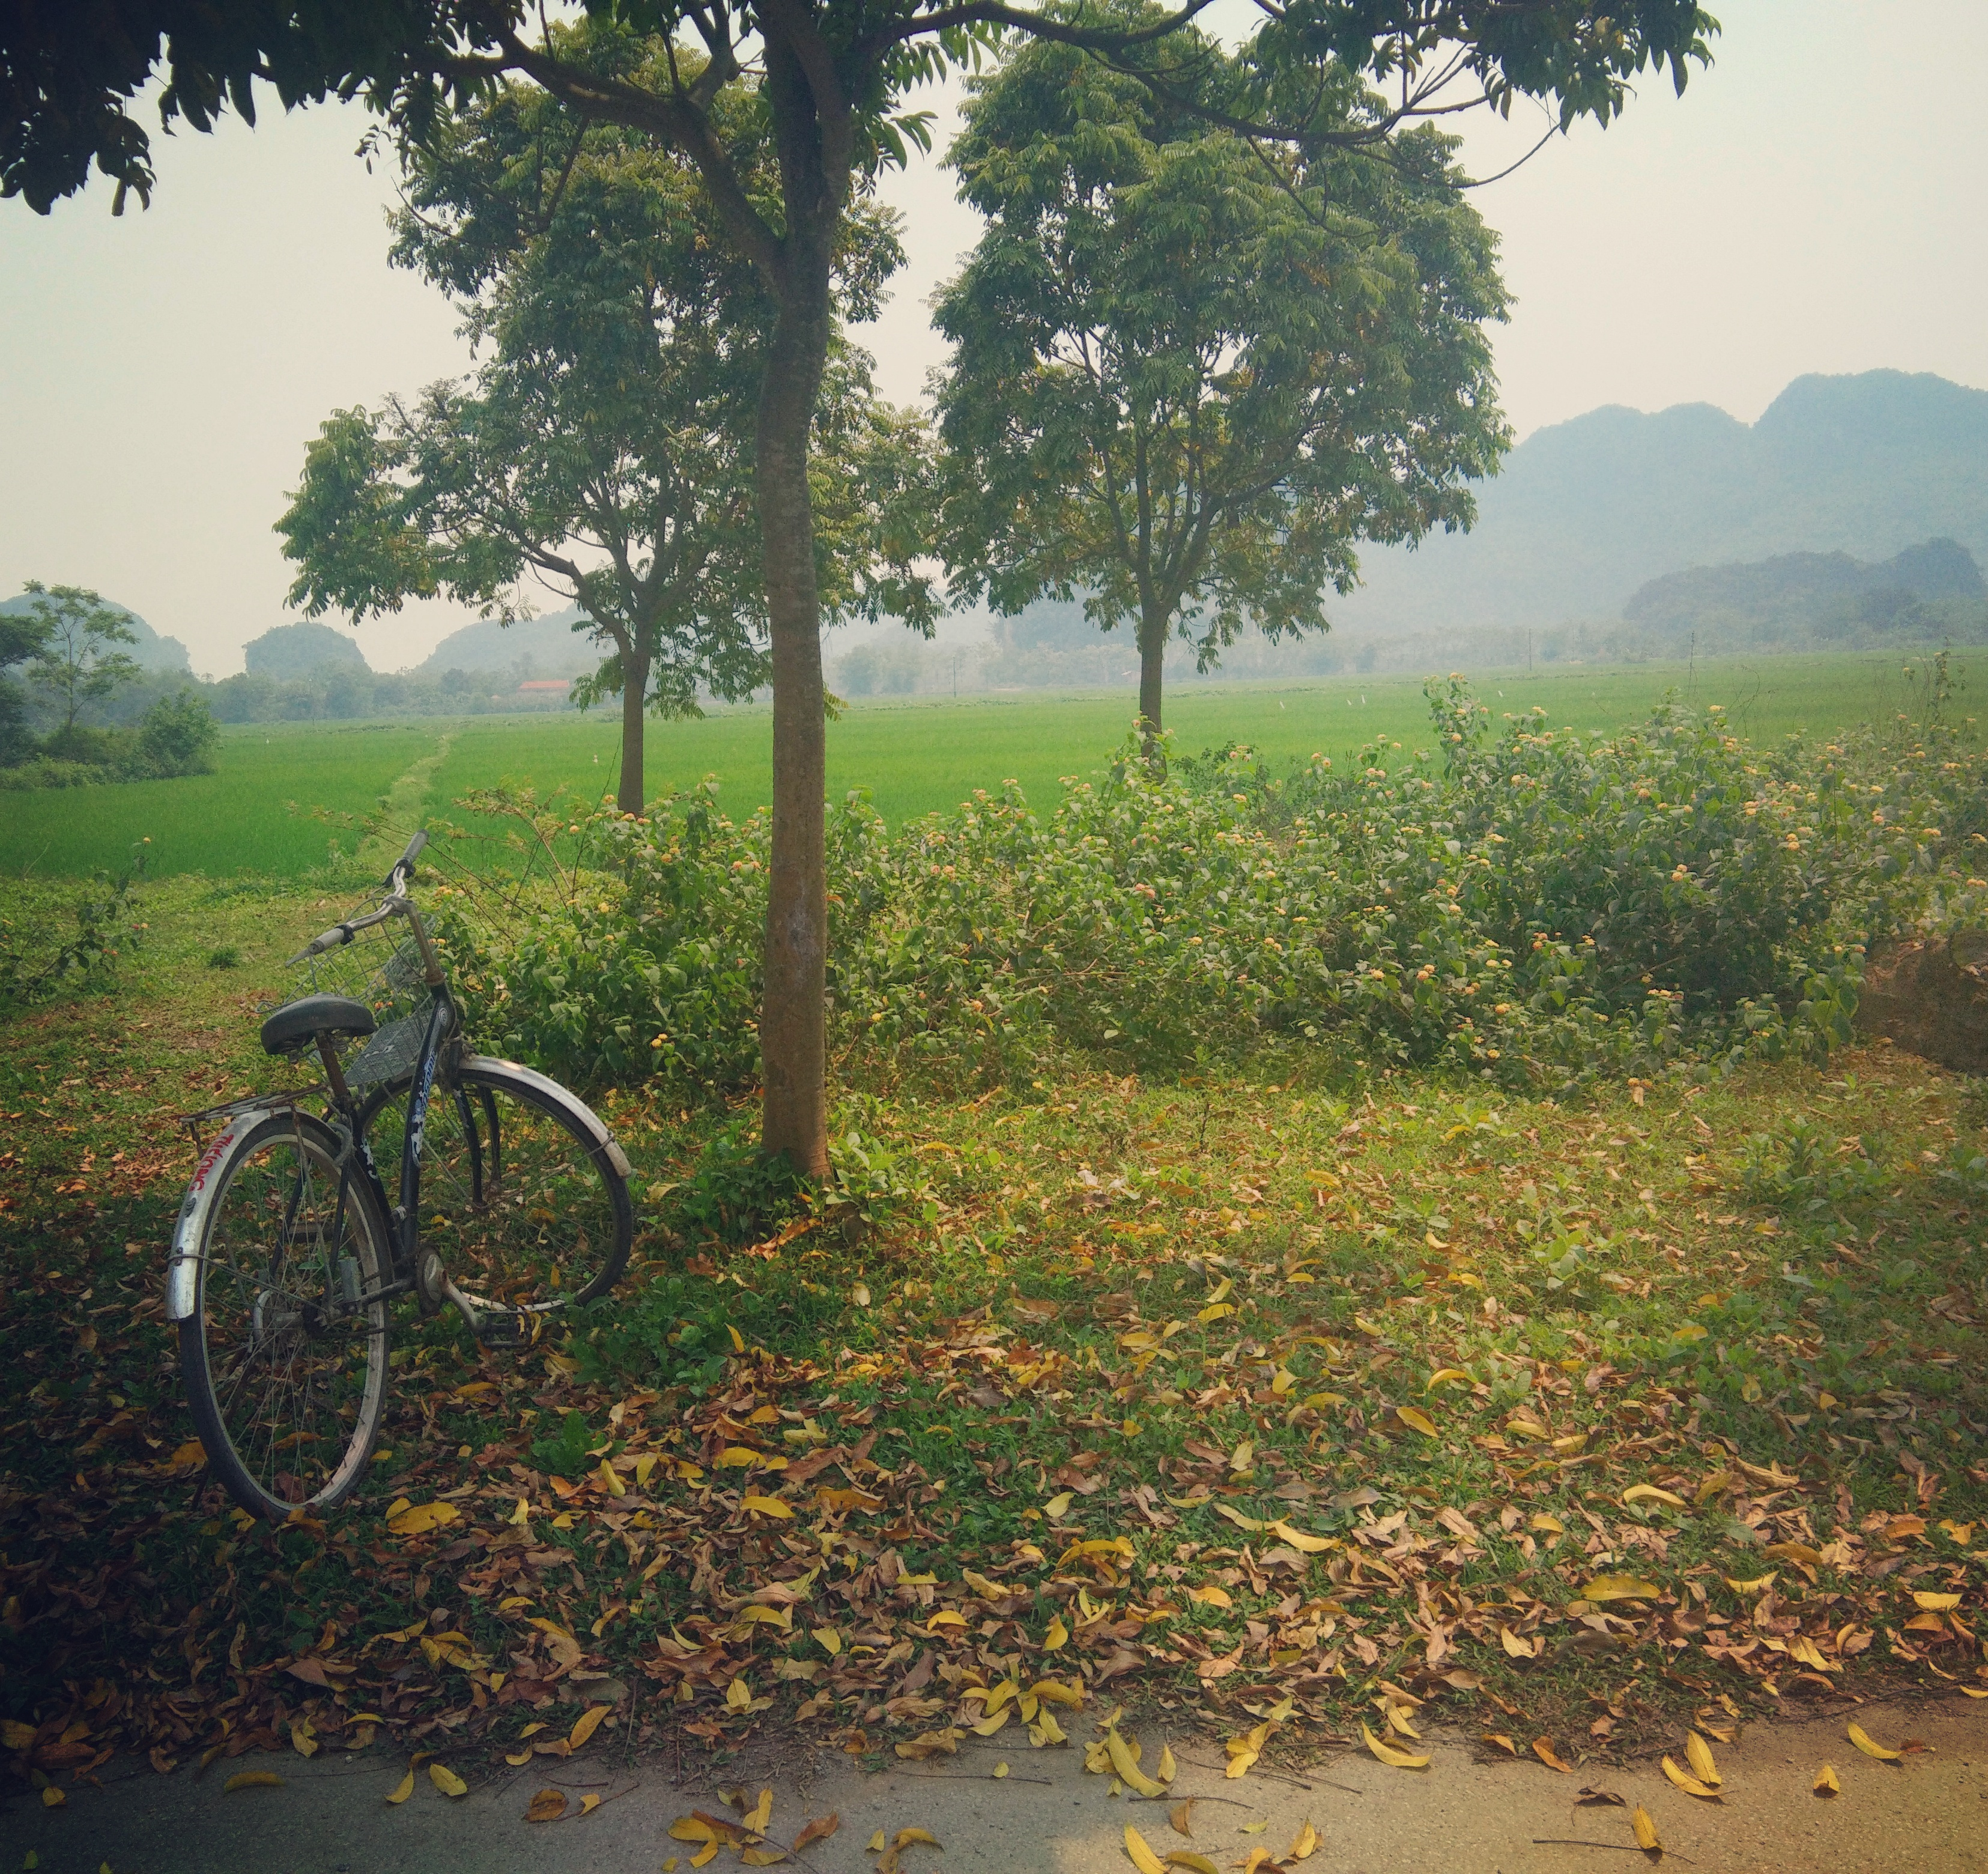 Leisurely explore the majestic Tam Coc by bike. Vietnam www.knowntoventure.com